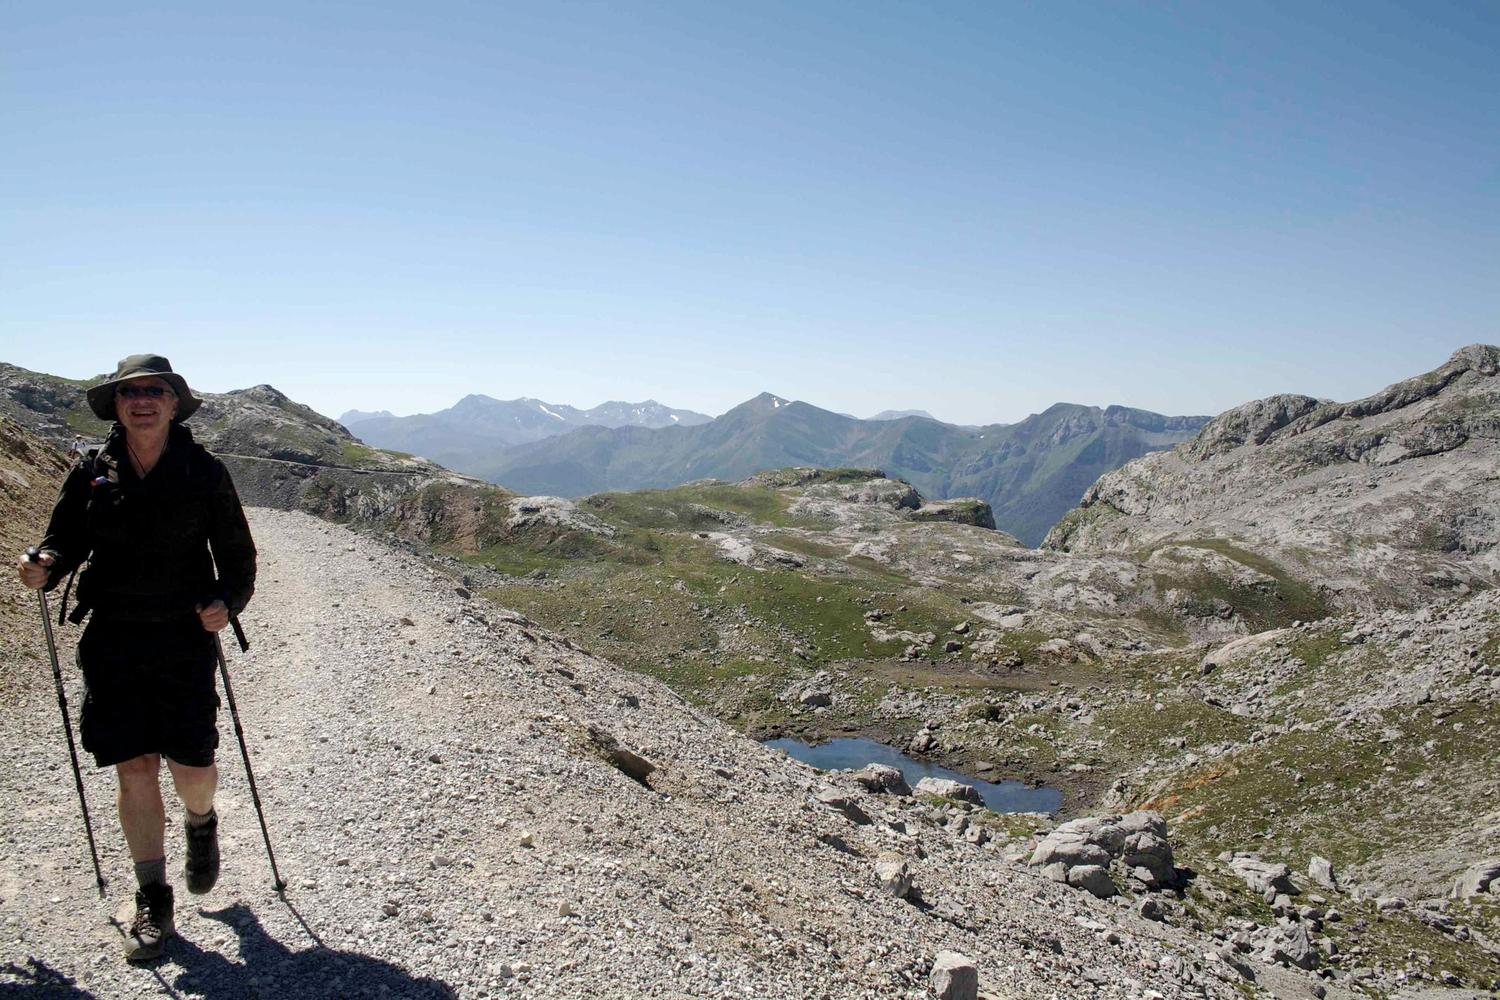 Walking in the limestone highlands of the Picos de Europa